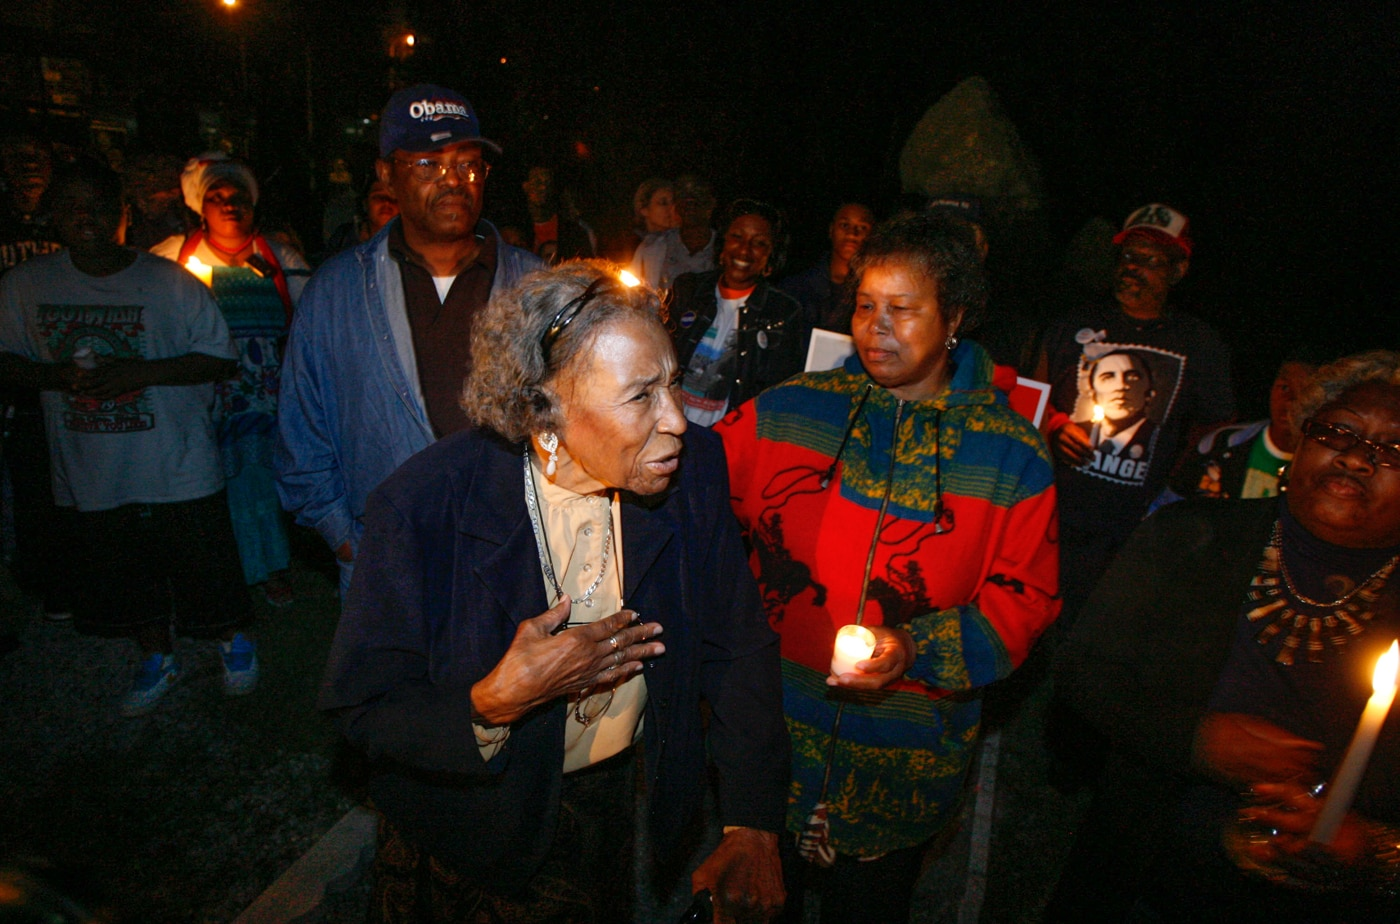 People standing in dark, some holding candles (© Stacey Wescott/Chicago Tribune/MCT via Getty Images)